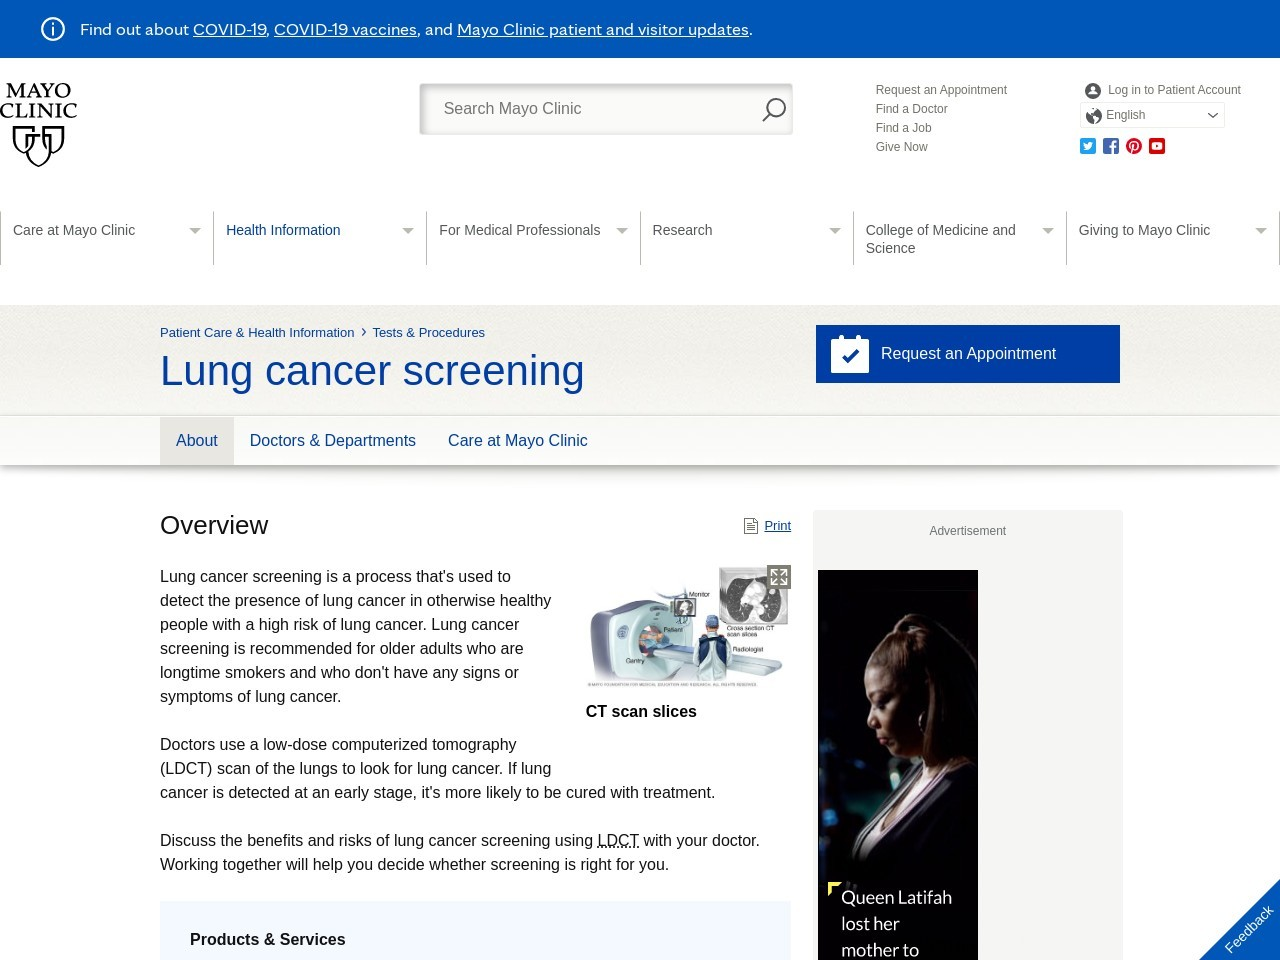 Newest screening focused on detecting lung cancer early